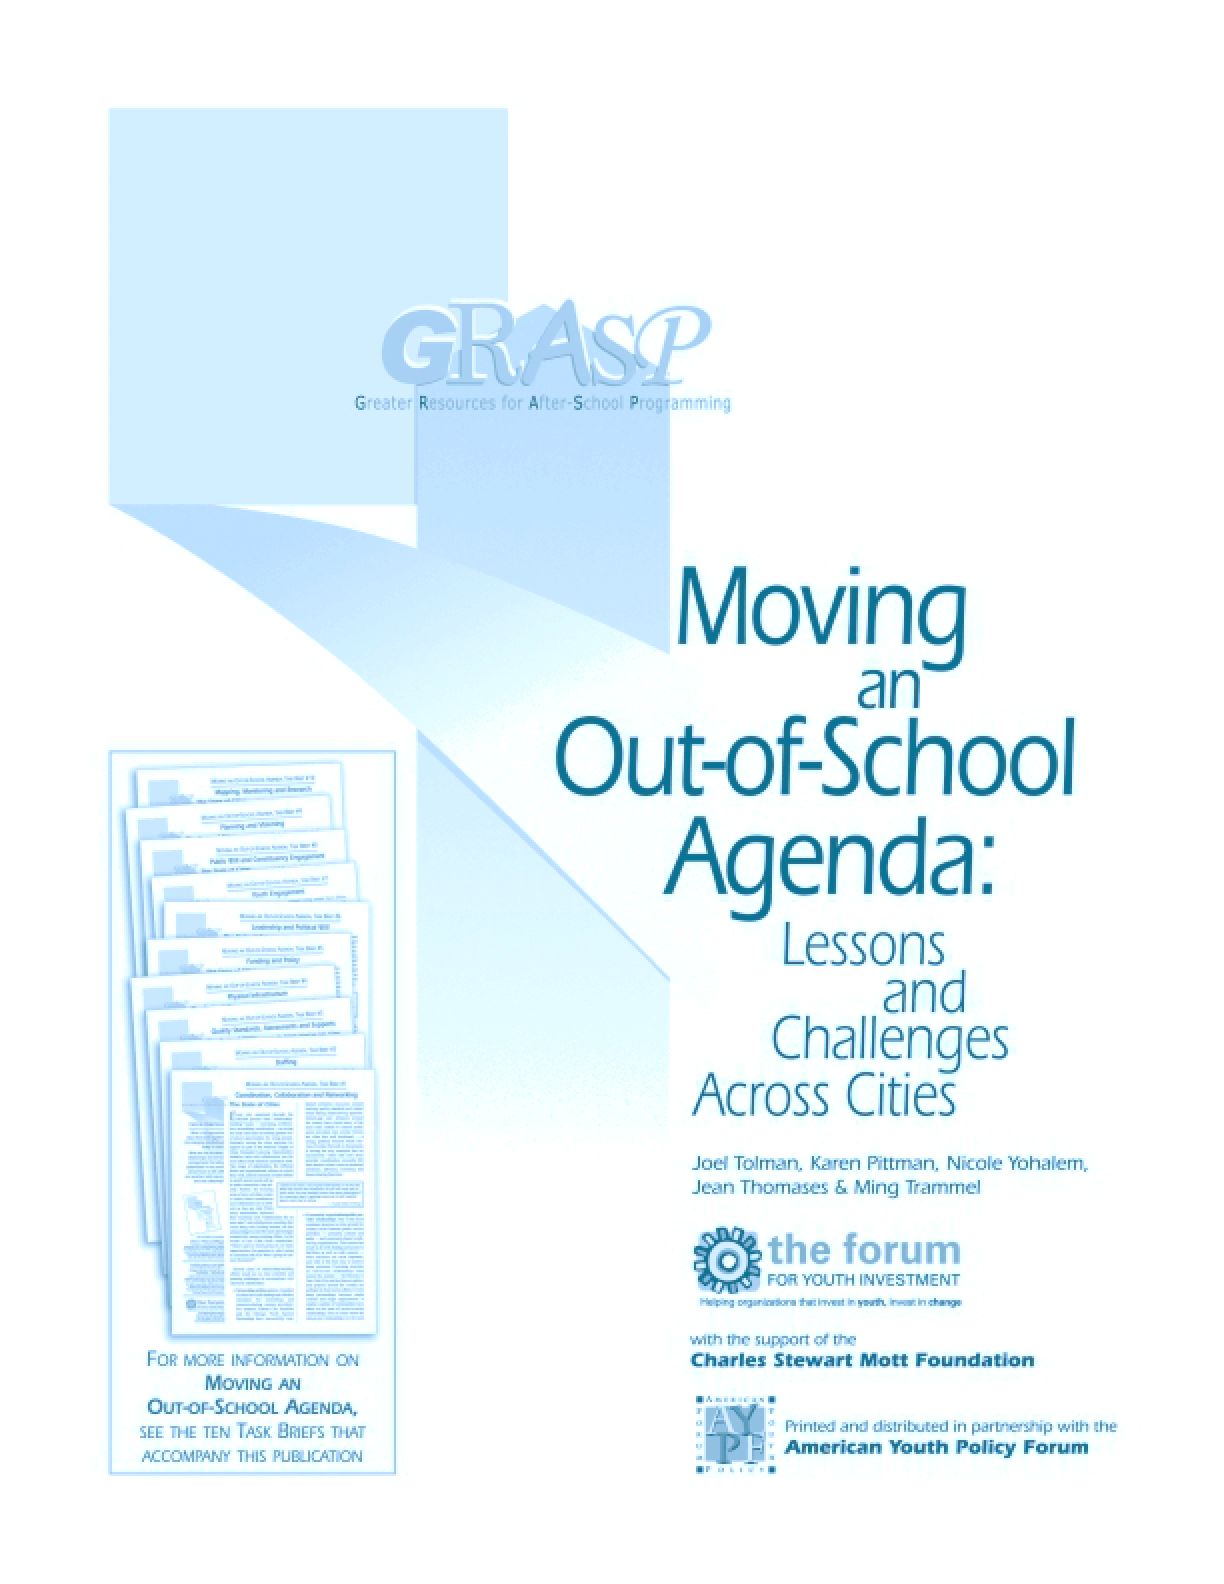 Moving an Out-of-School Agenda: Lessons and Challenges Across Cities